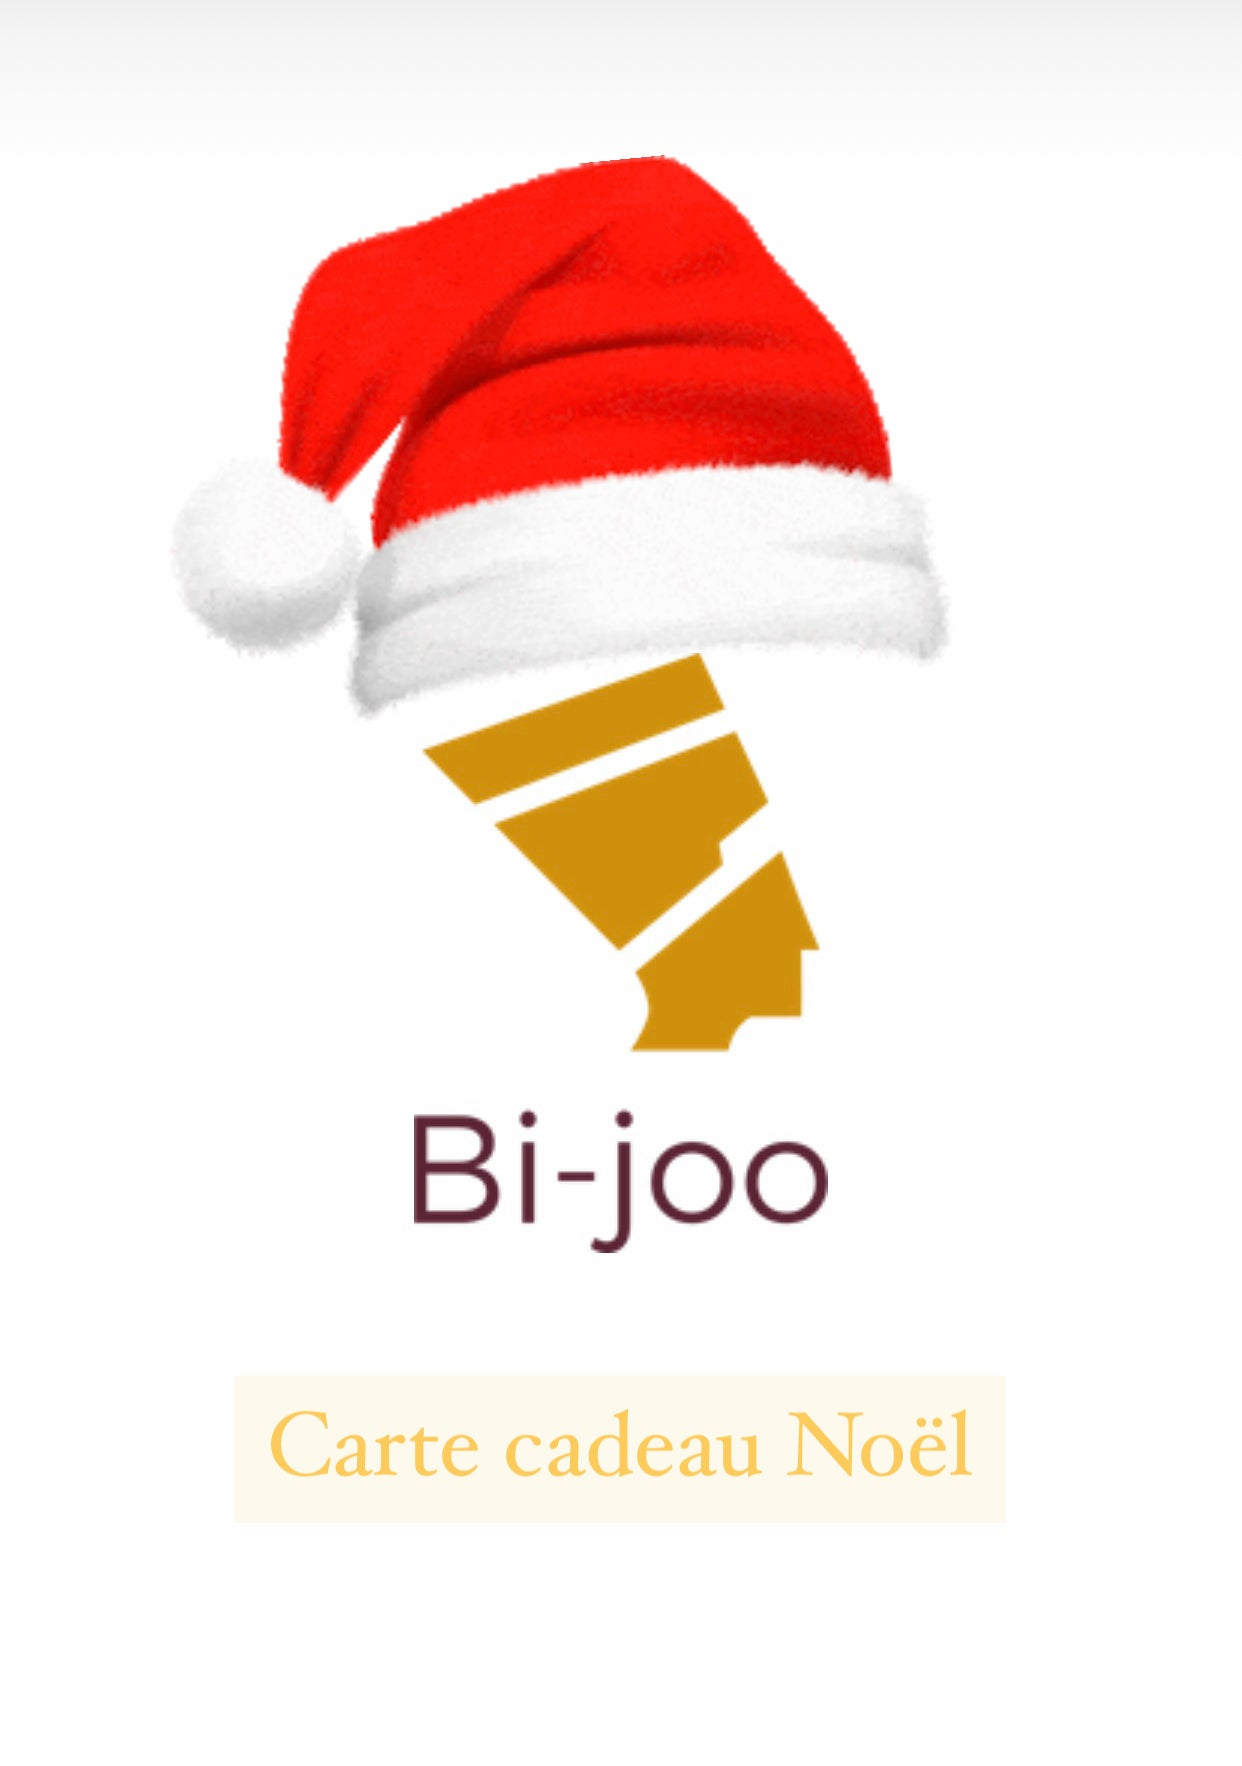 Carte-cadeau Bi-joo | Bijoux d'exception | Paris